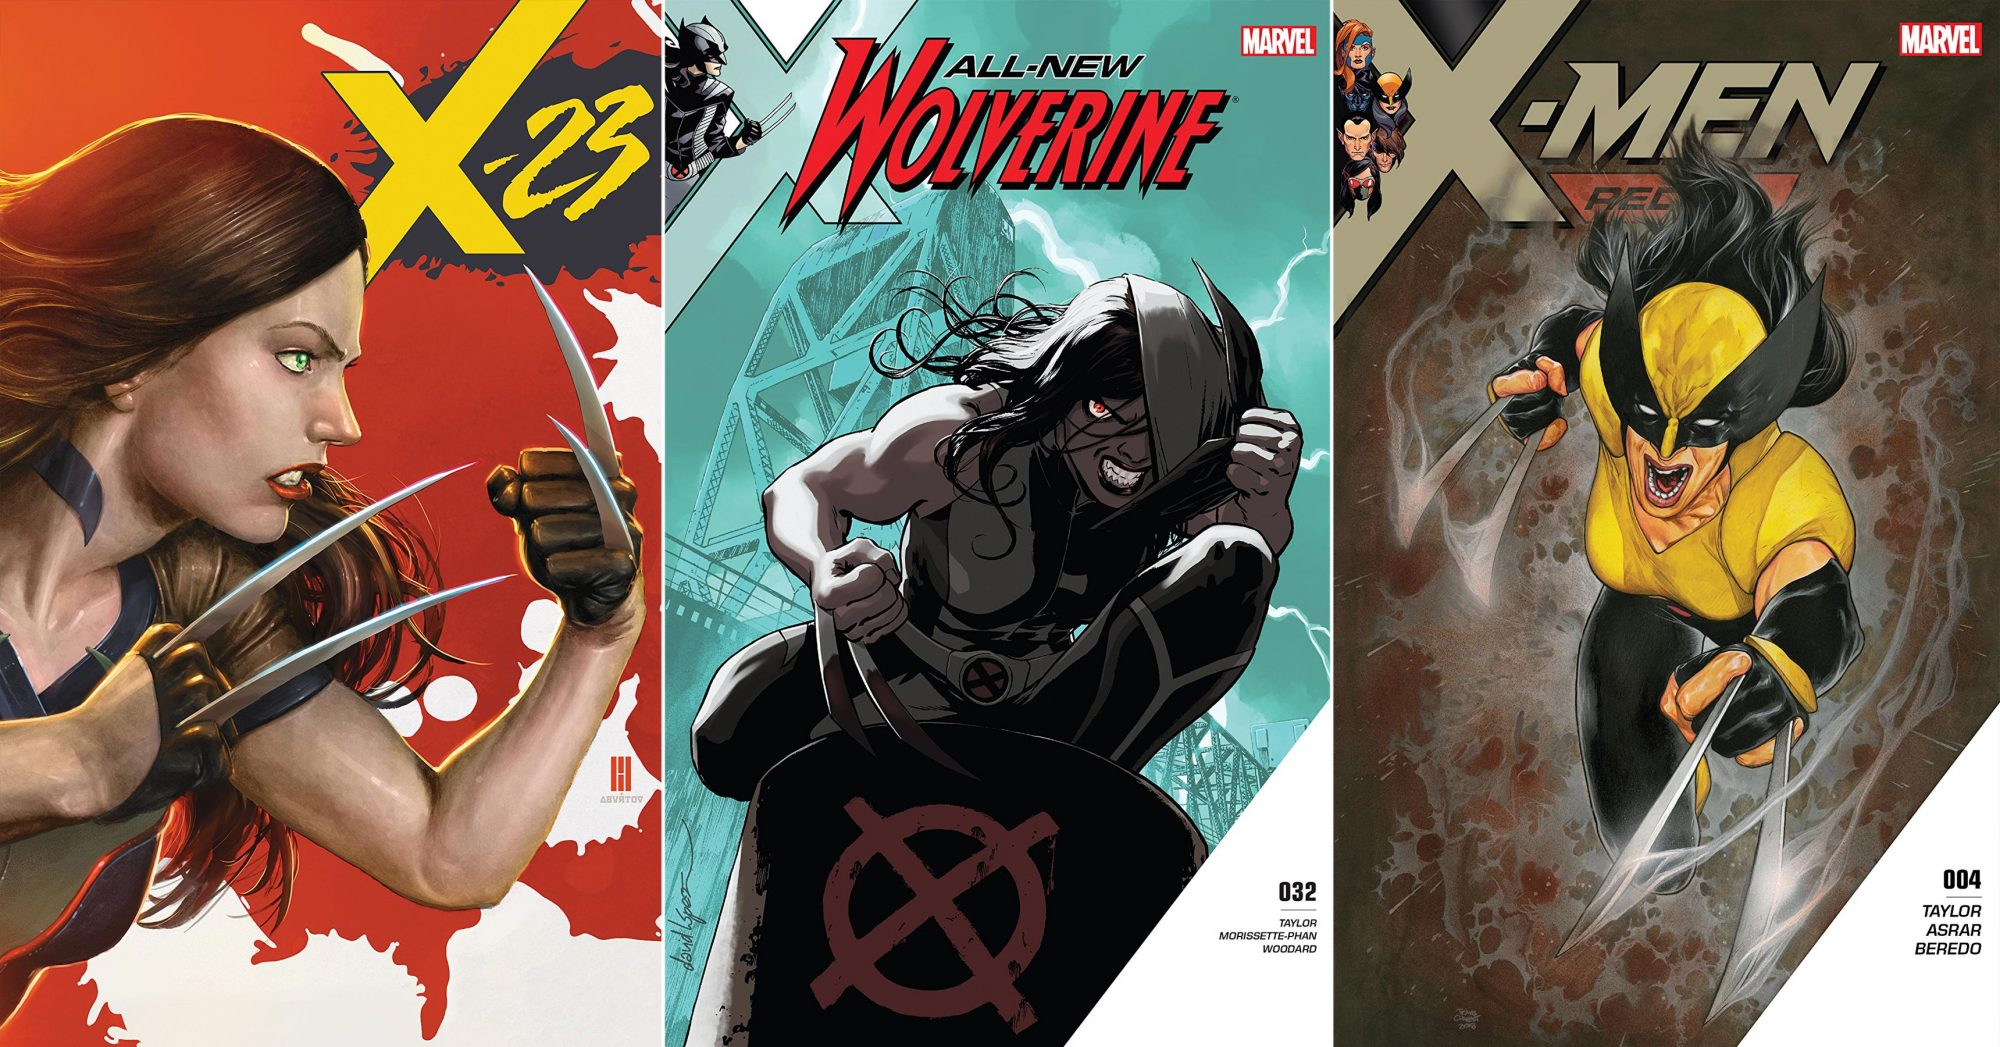 Superhero of the year: X-23, a.k.a All-New Wolverine, a.k.a Laura Kinney